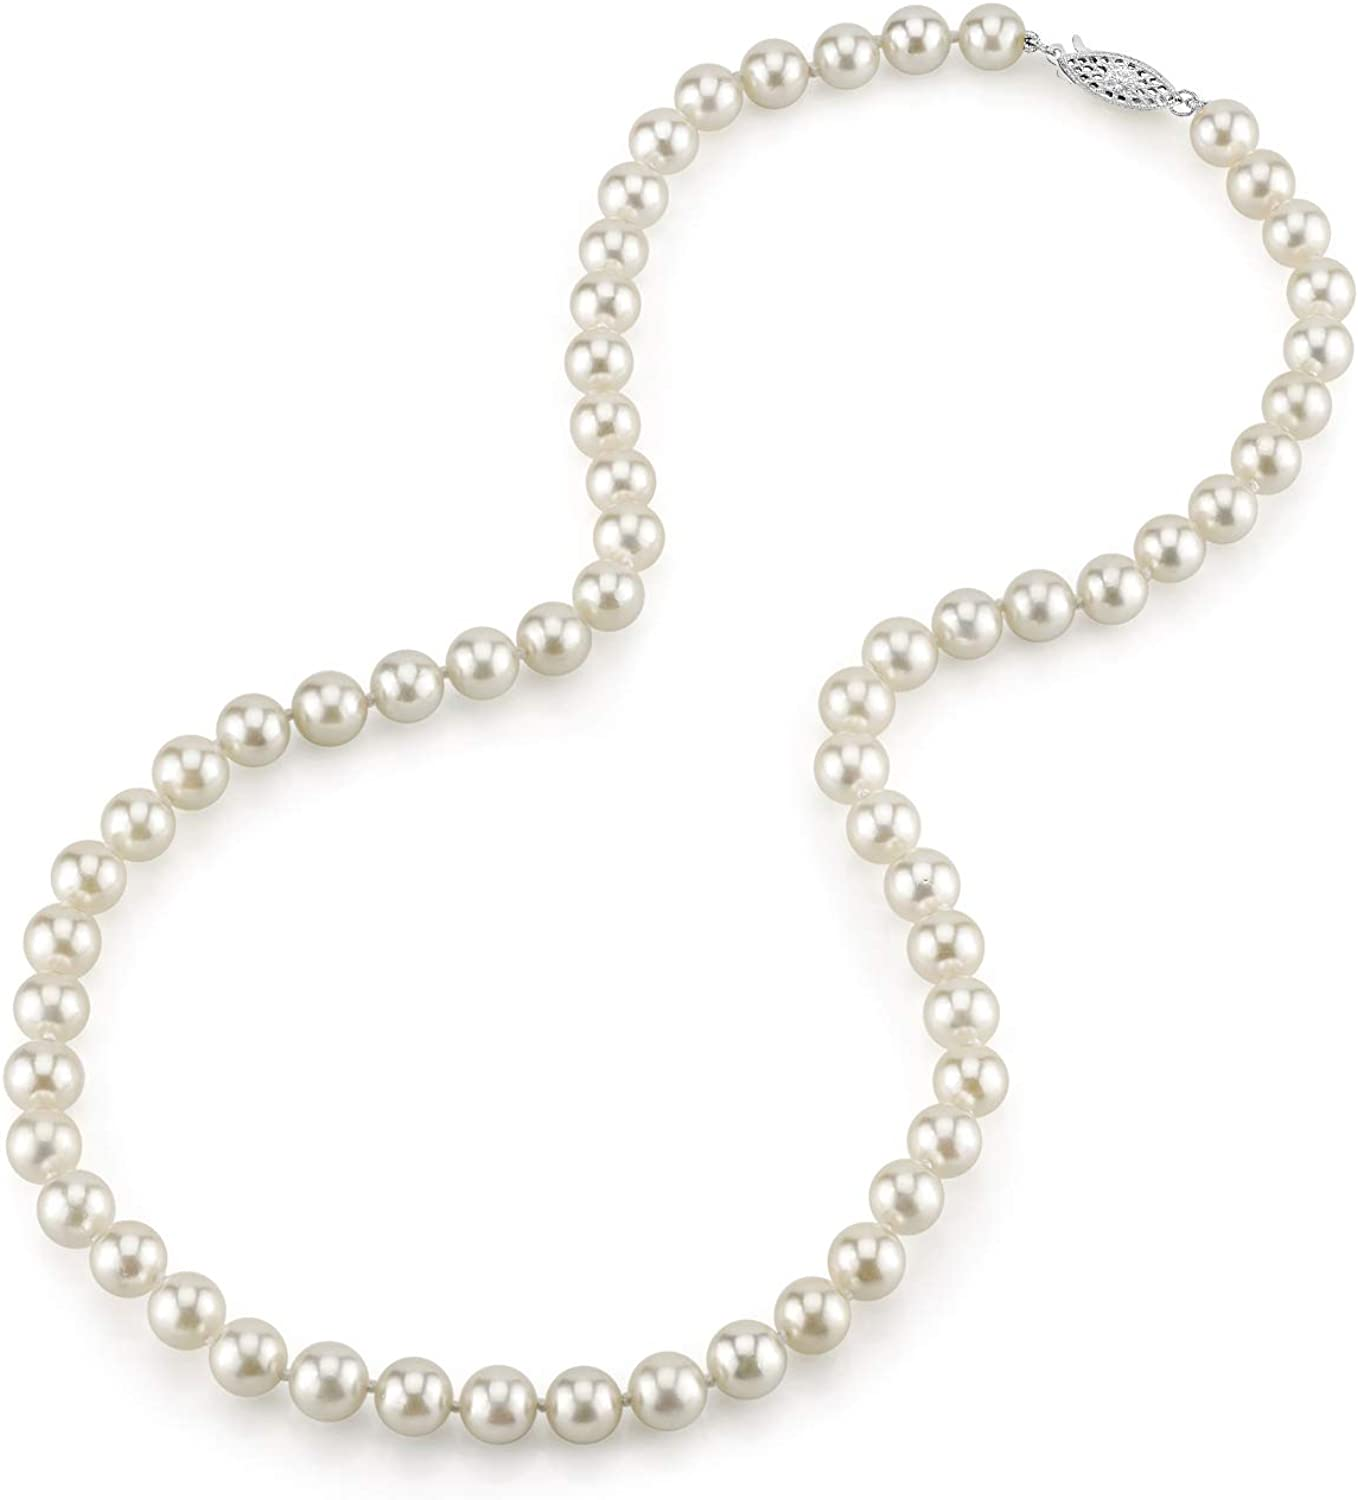 6.5-7.0mm High order White Japanese Akoya Charlotte Mall Cultured Saltwater Pearl Necklace